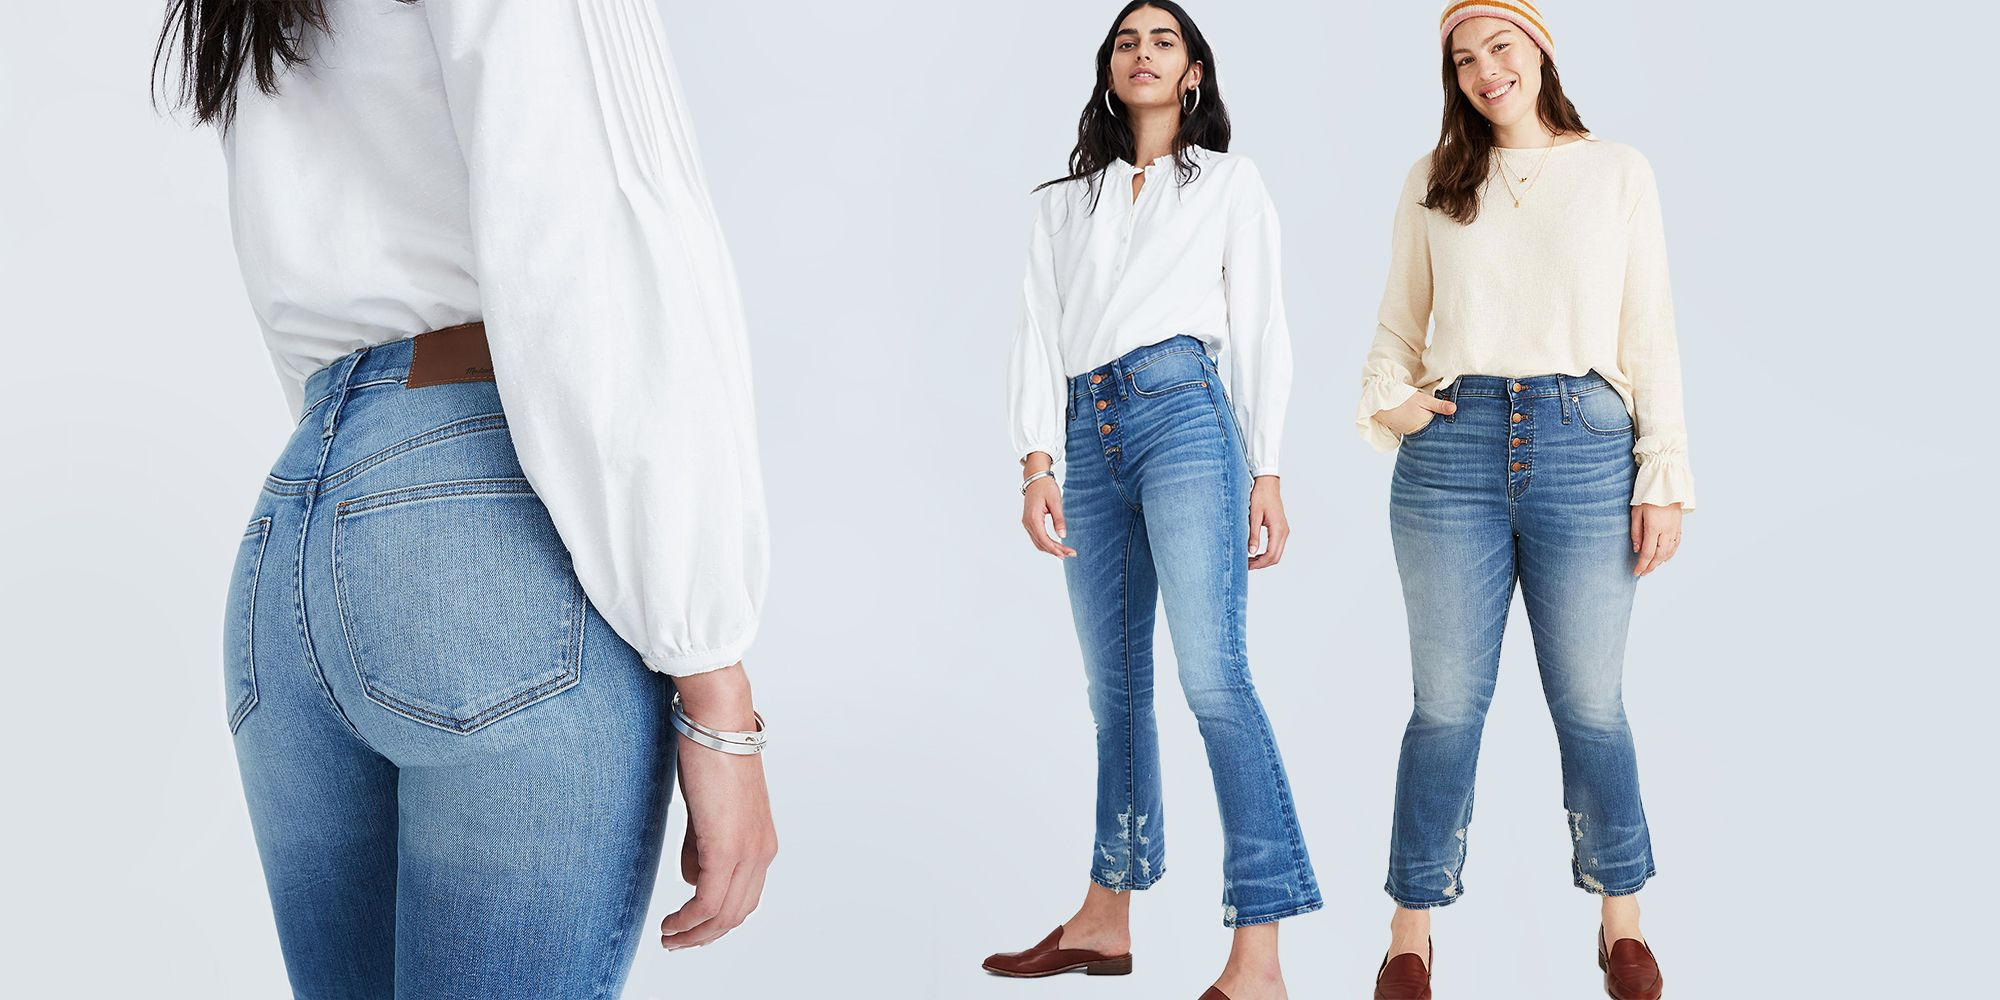 Plus more fashion staples from Nordstrom's famous sale.